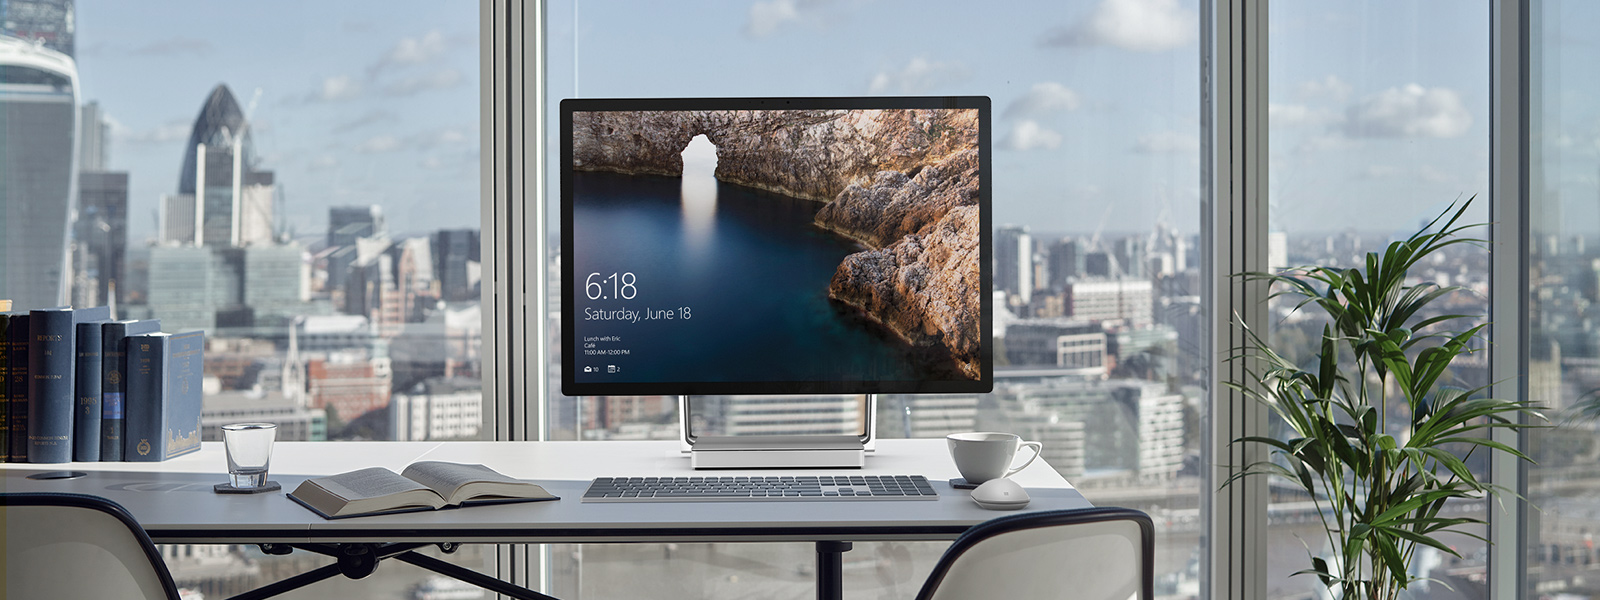 Microsoft Surface Studio computer